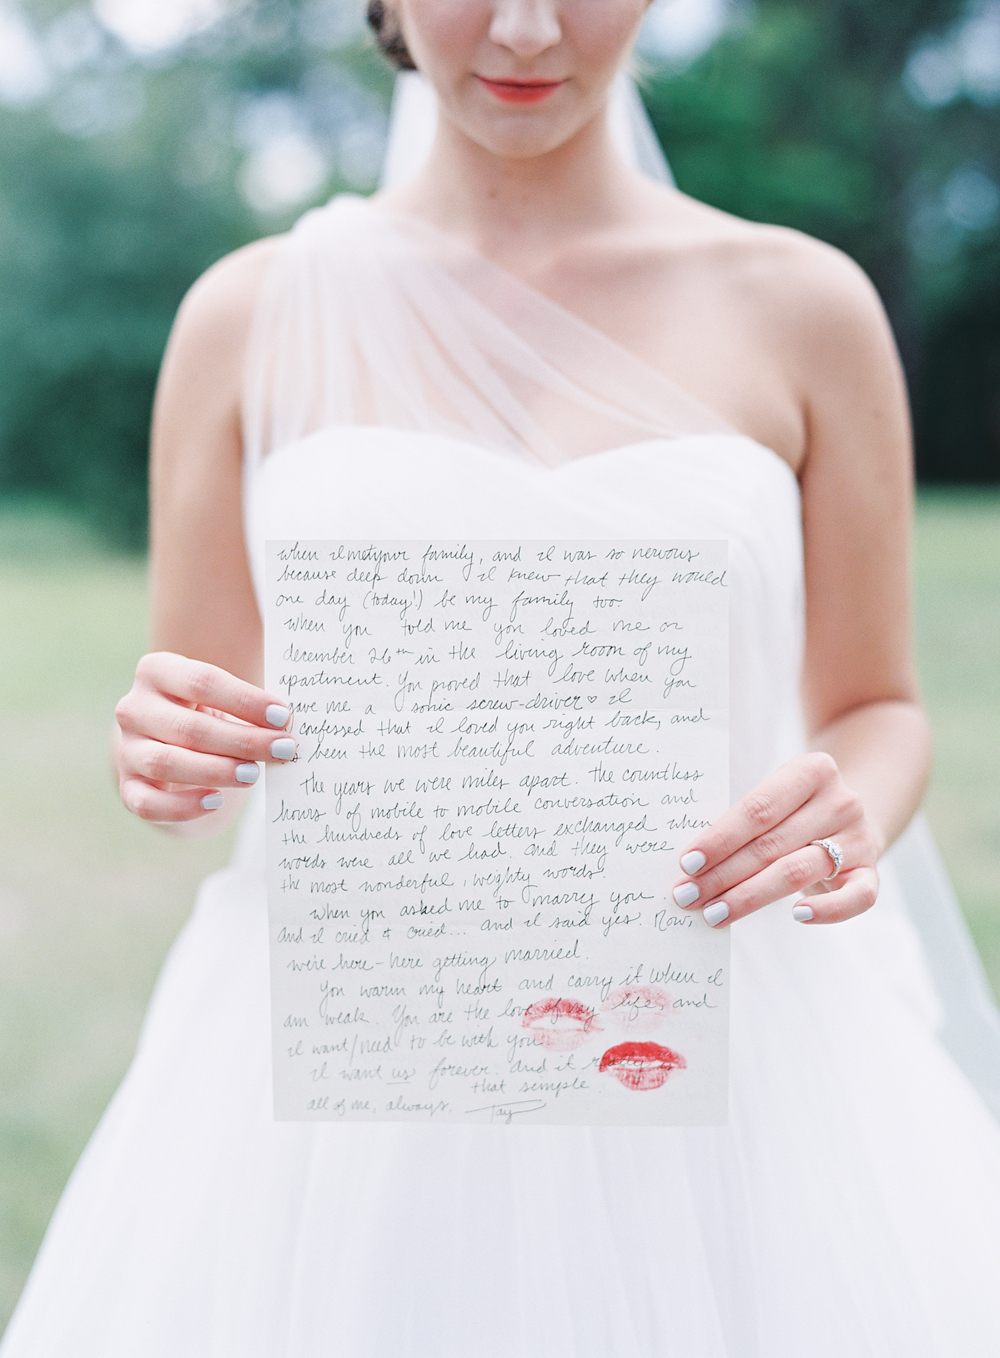 Navy and book themed wedding / photo by melaniegabrielle.com